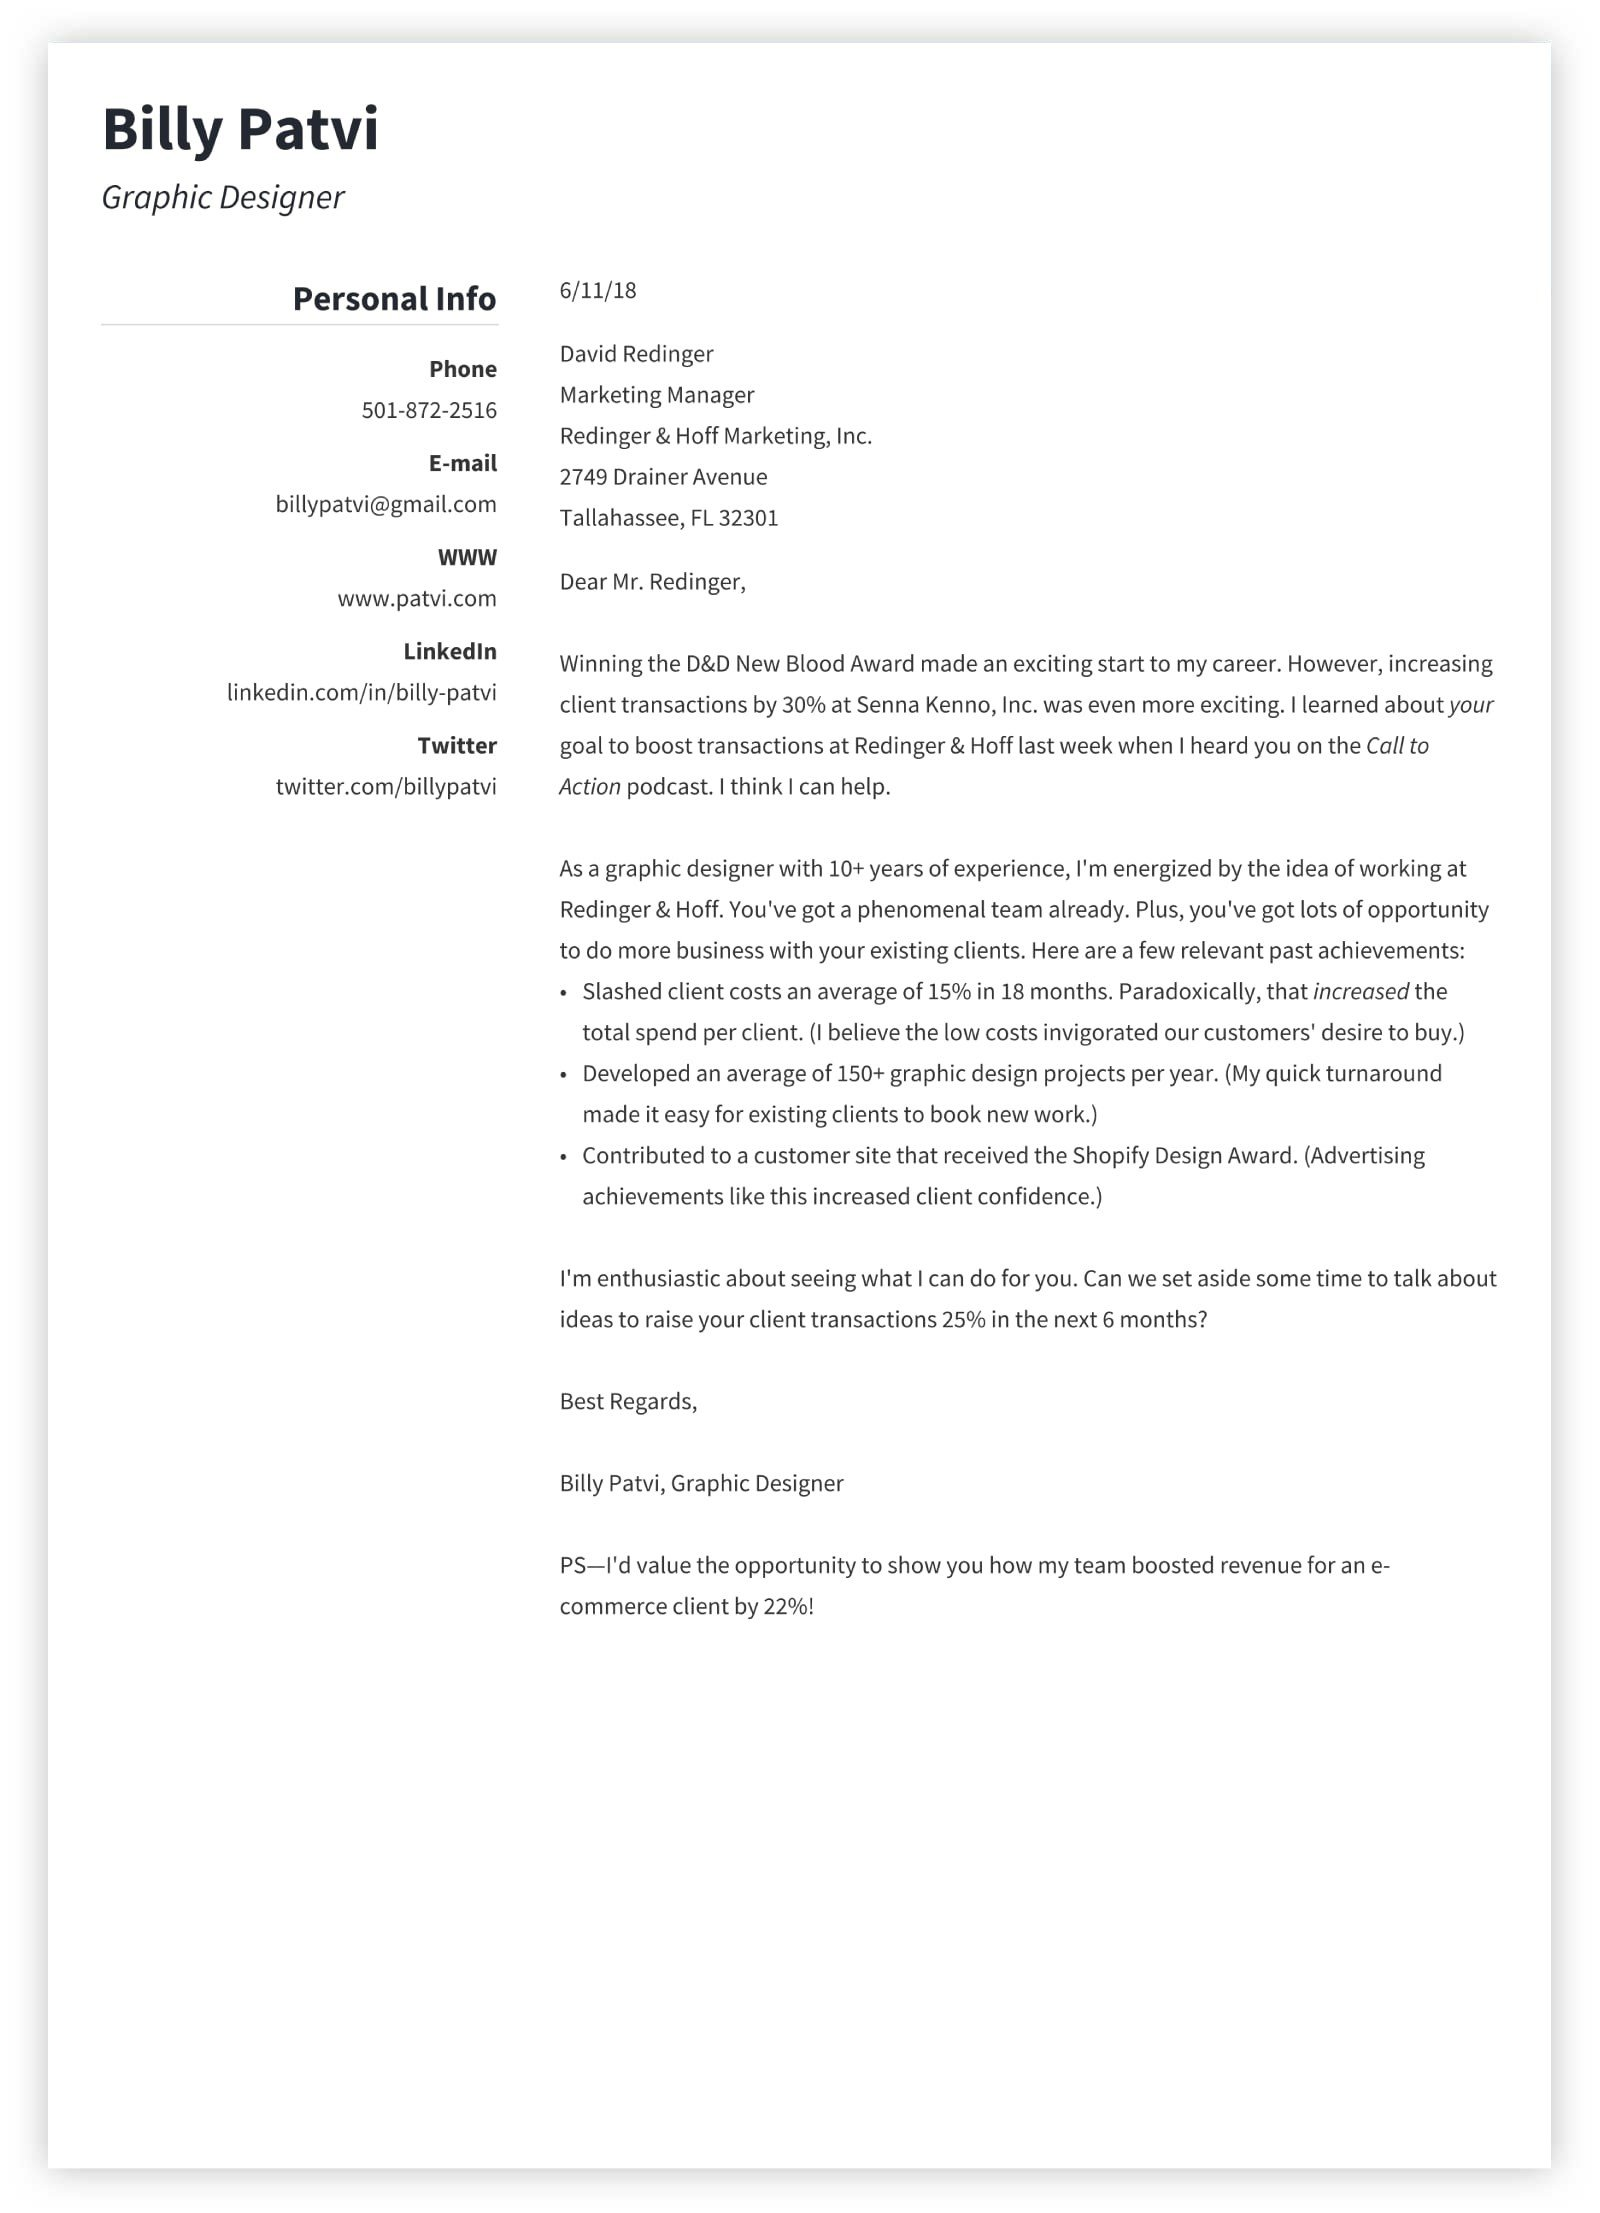 How To Write Resume Letter.How To Write A Cover Letter 10 Examples Tips Templates